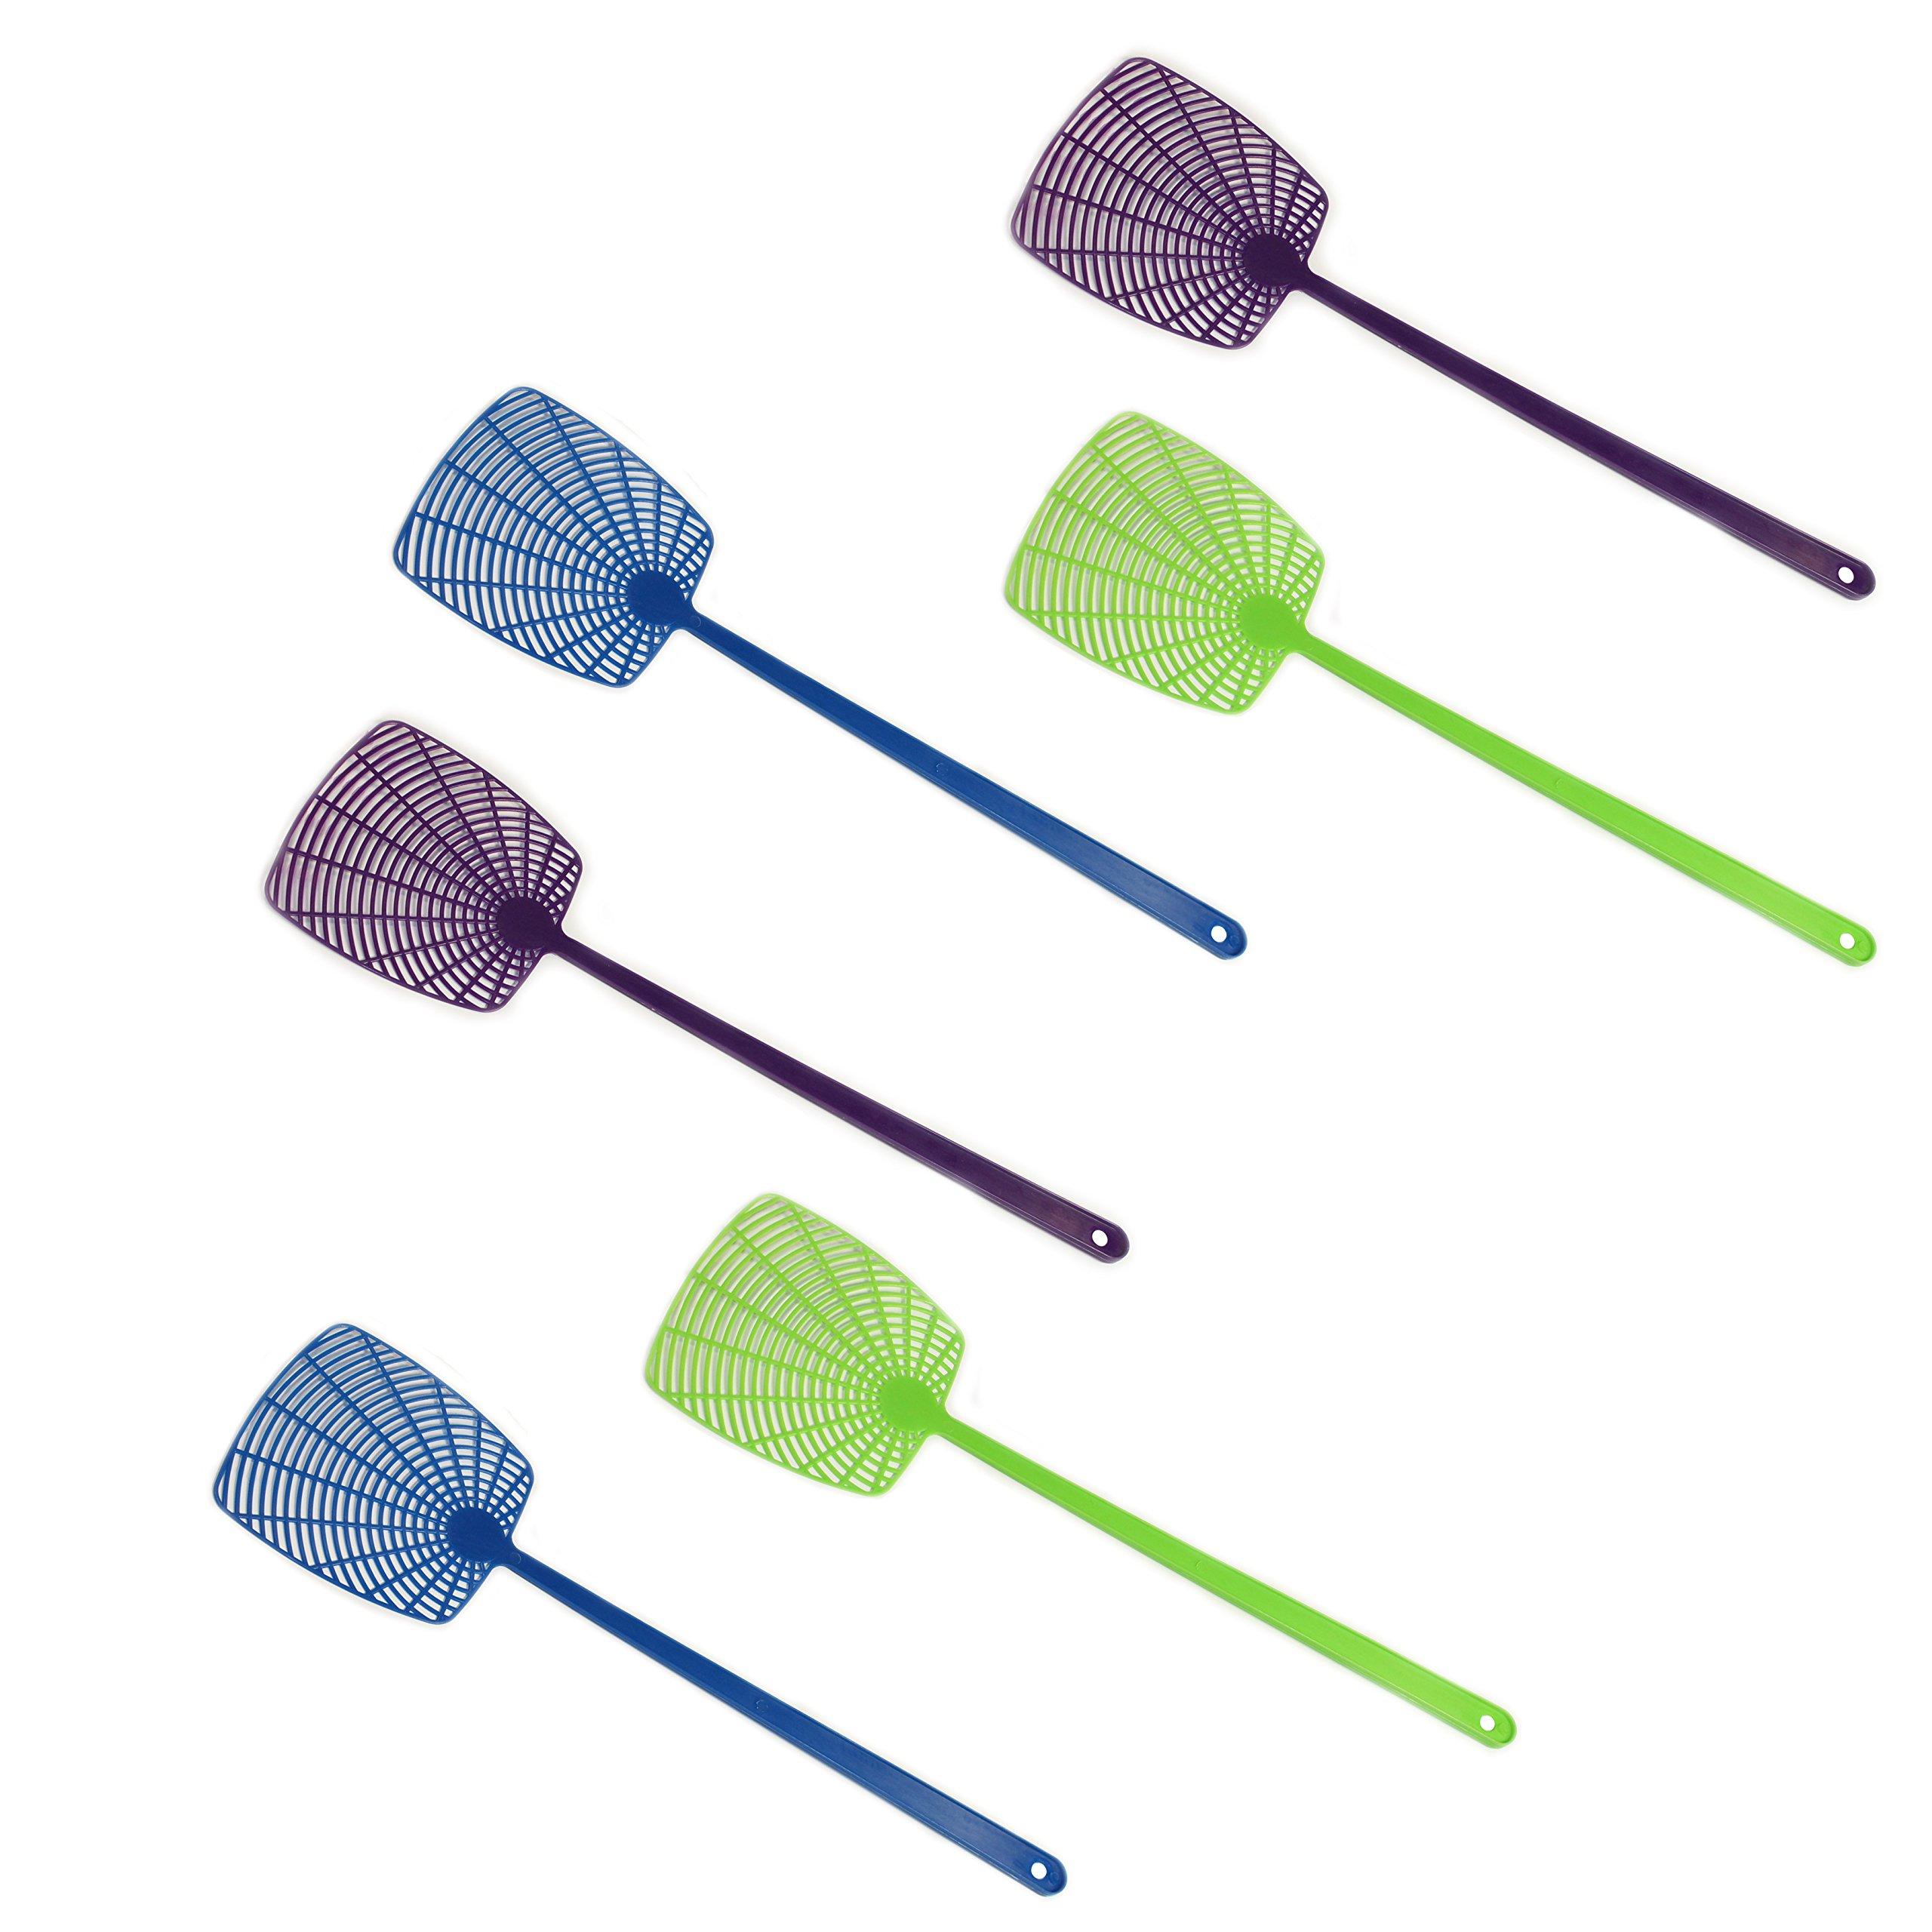 Pack of 6 Fly Swatters, Assorted Colors